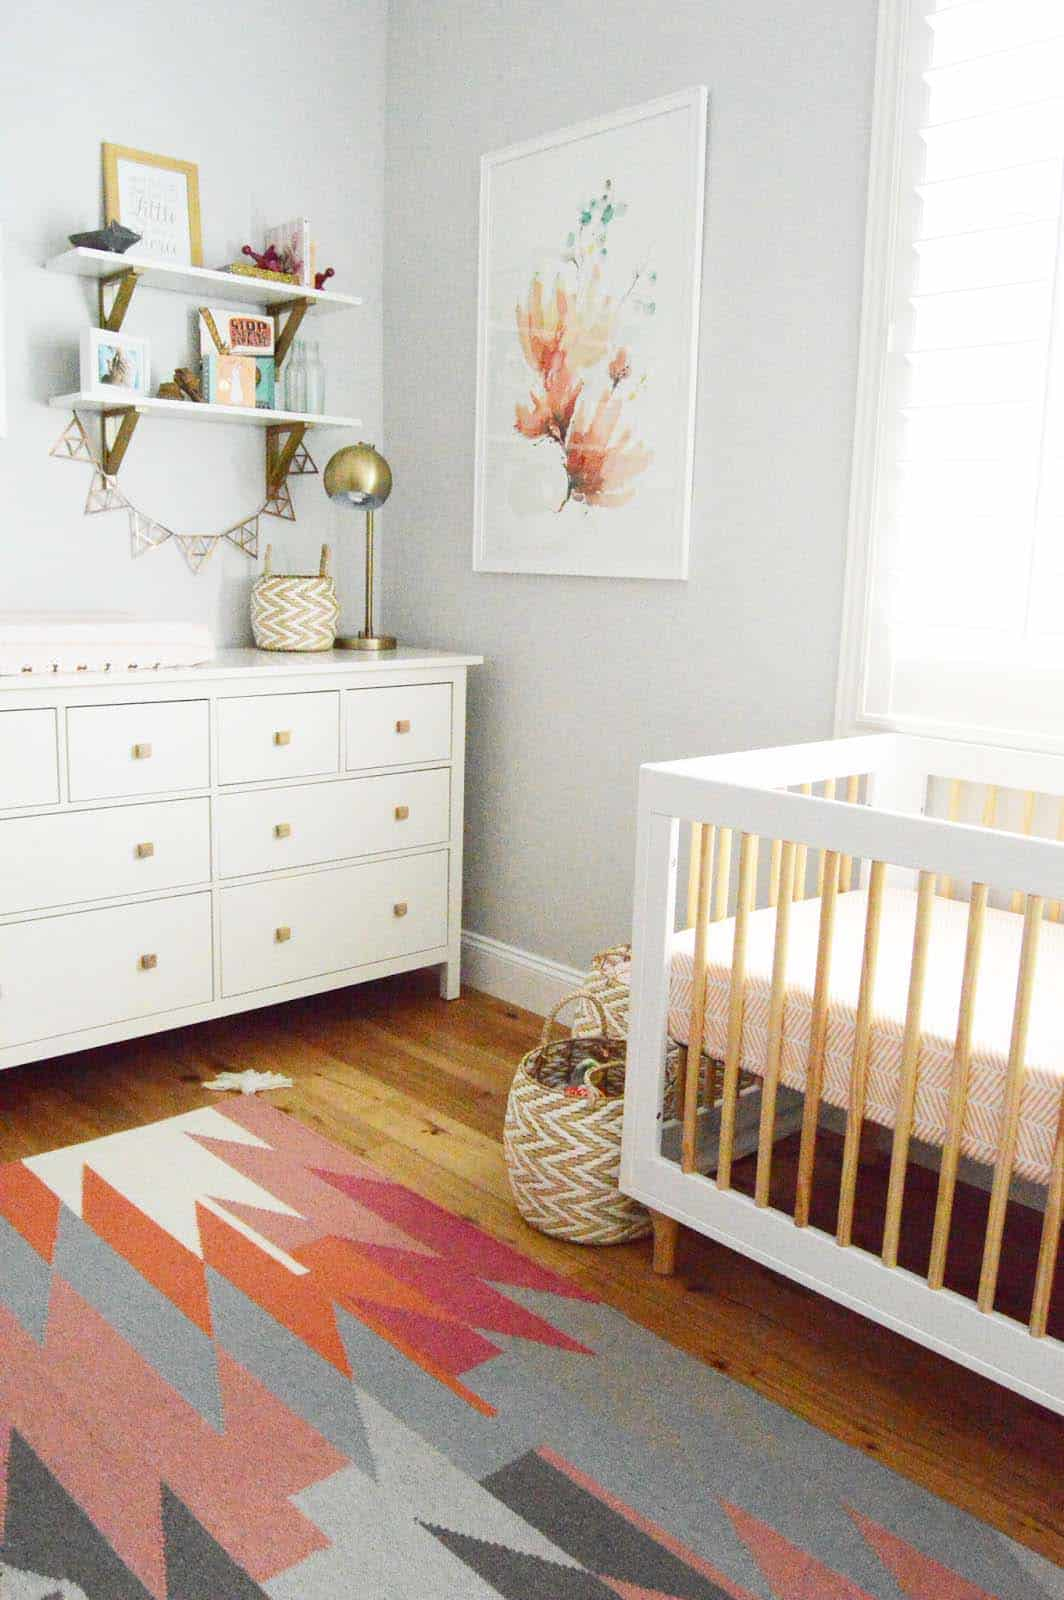 Stylish Nursery Decorating Ideas-37-1 Kindesign